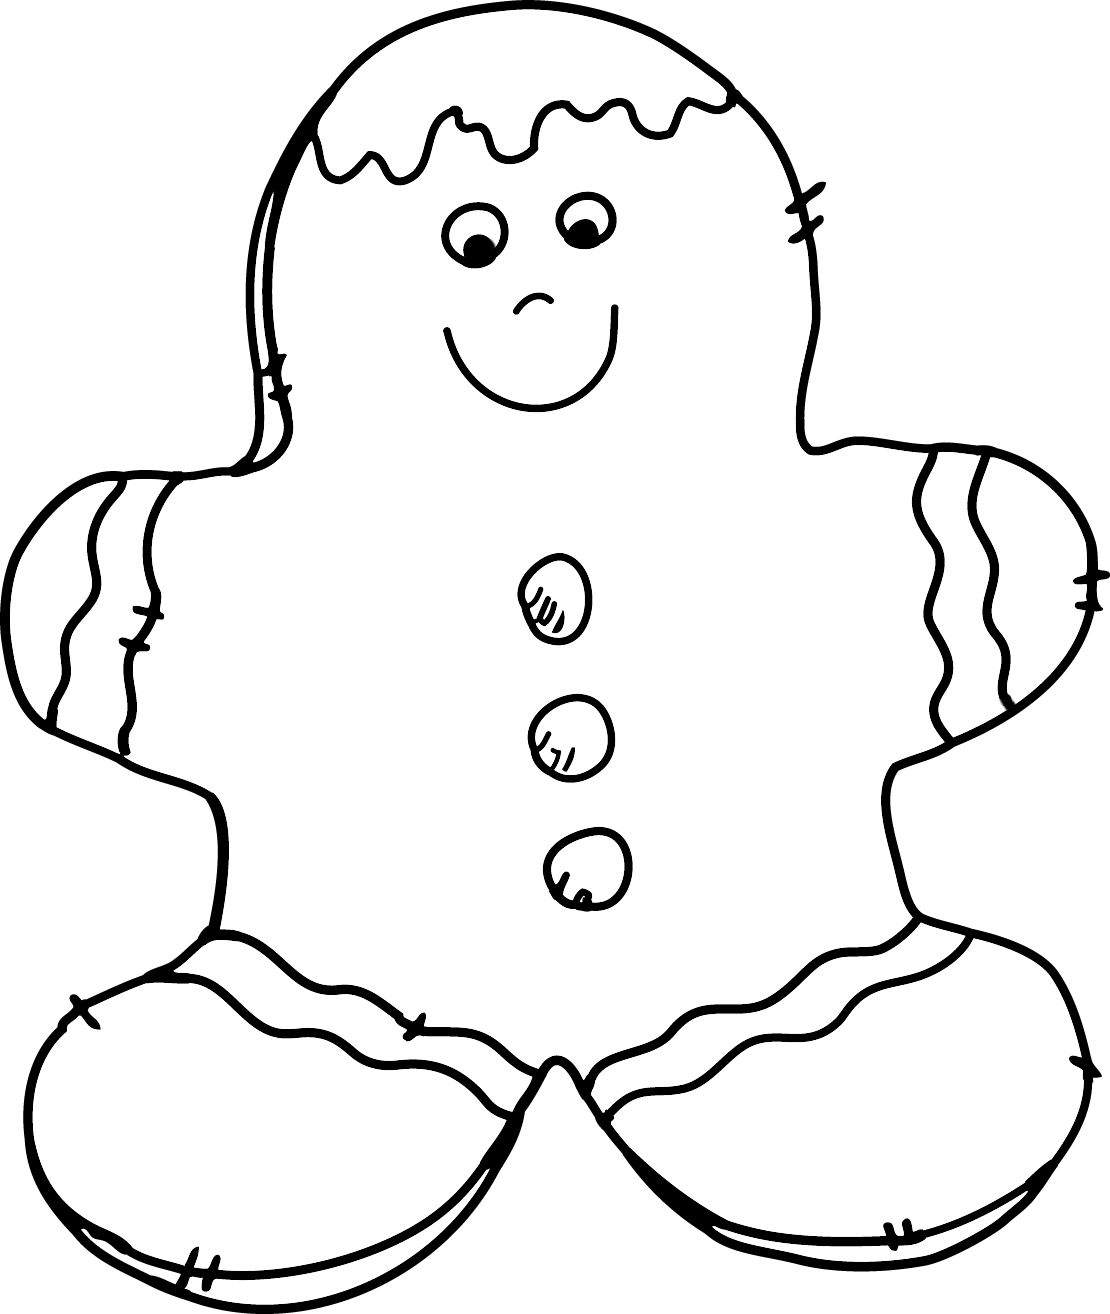 Black and white christmas clipart clipart library Gingerbread Man Clipart | jokingart.com clipart library